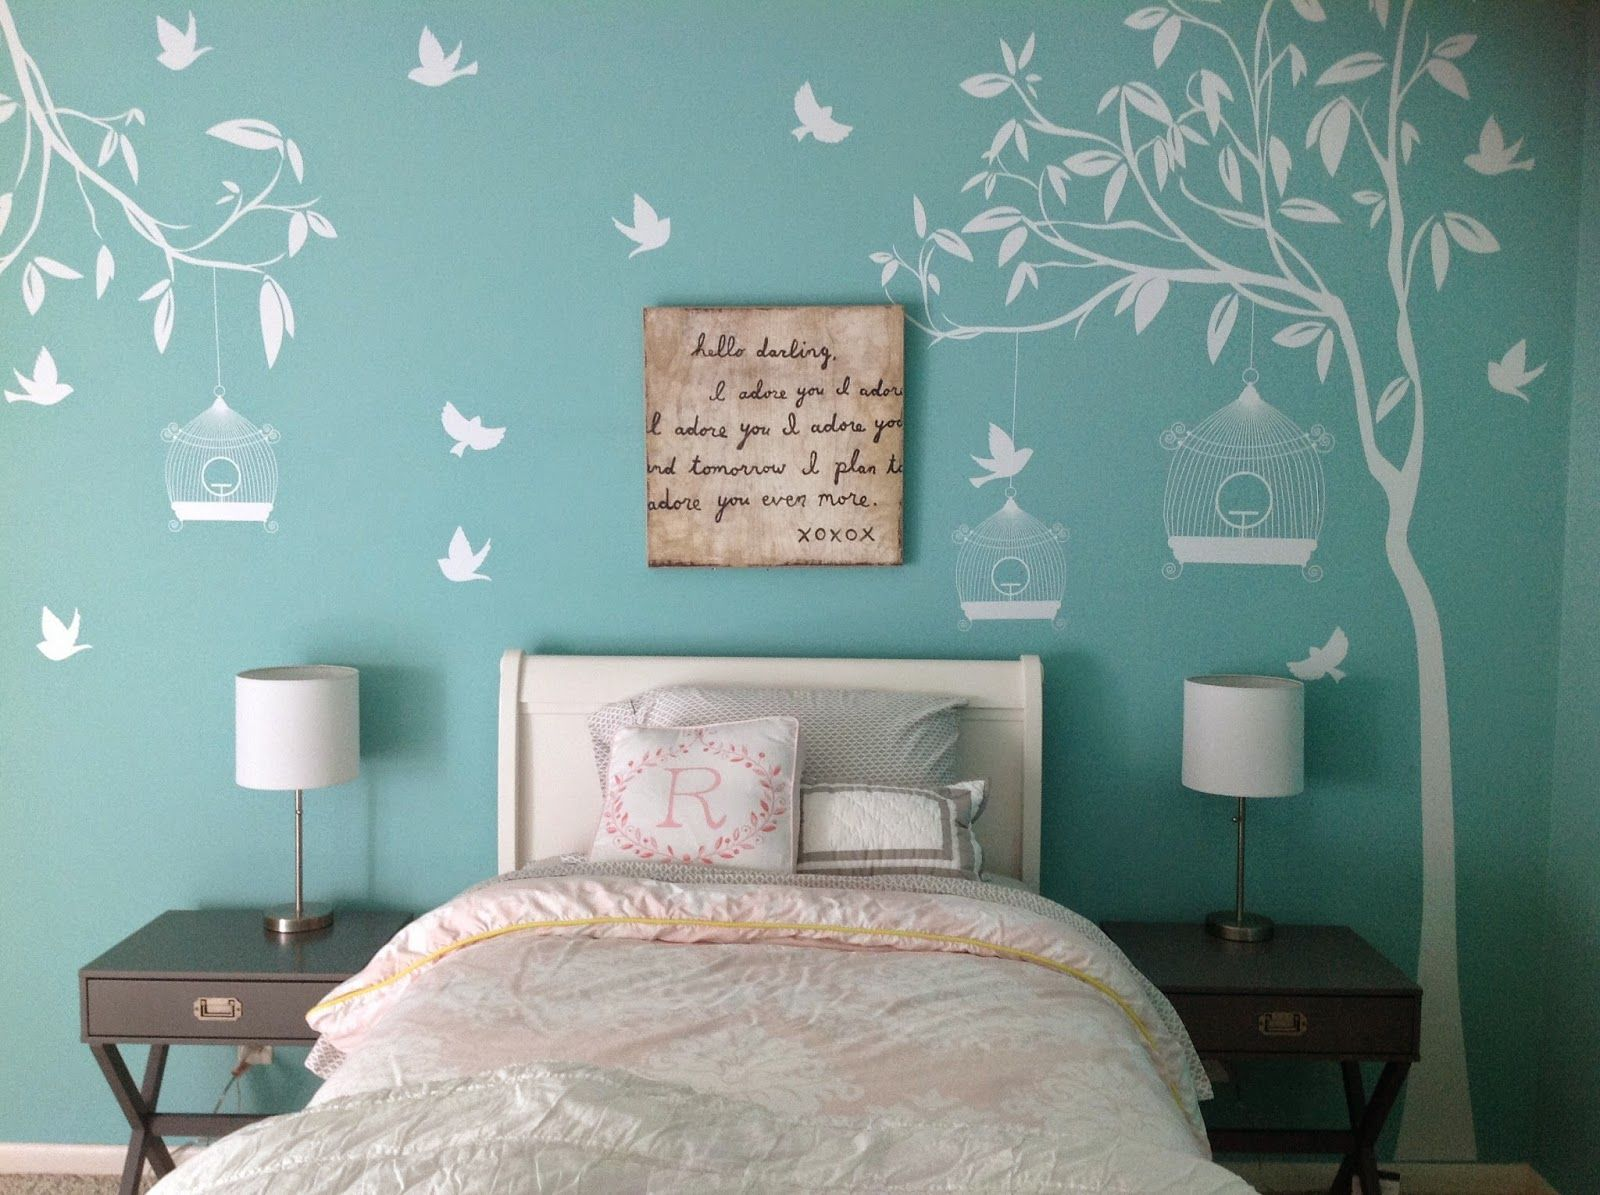 Christy\u0027s Cozy Corners: Evgie Wall Decals Giveaway Two! Open to US ...